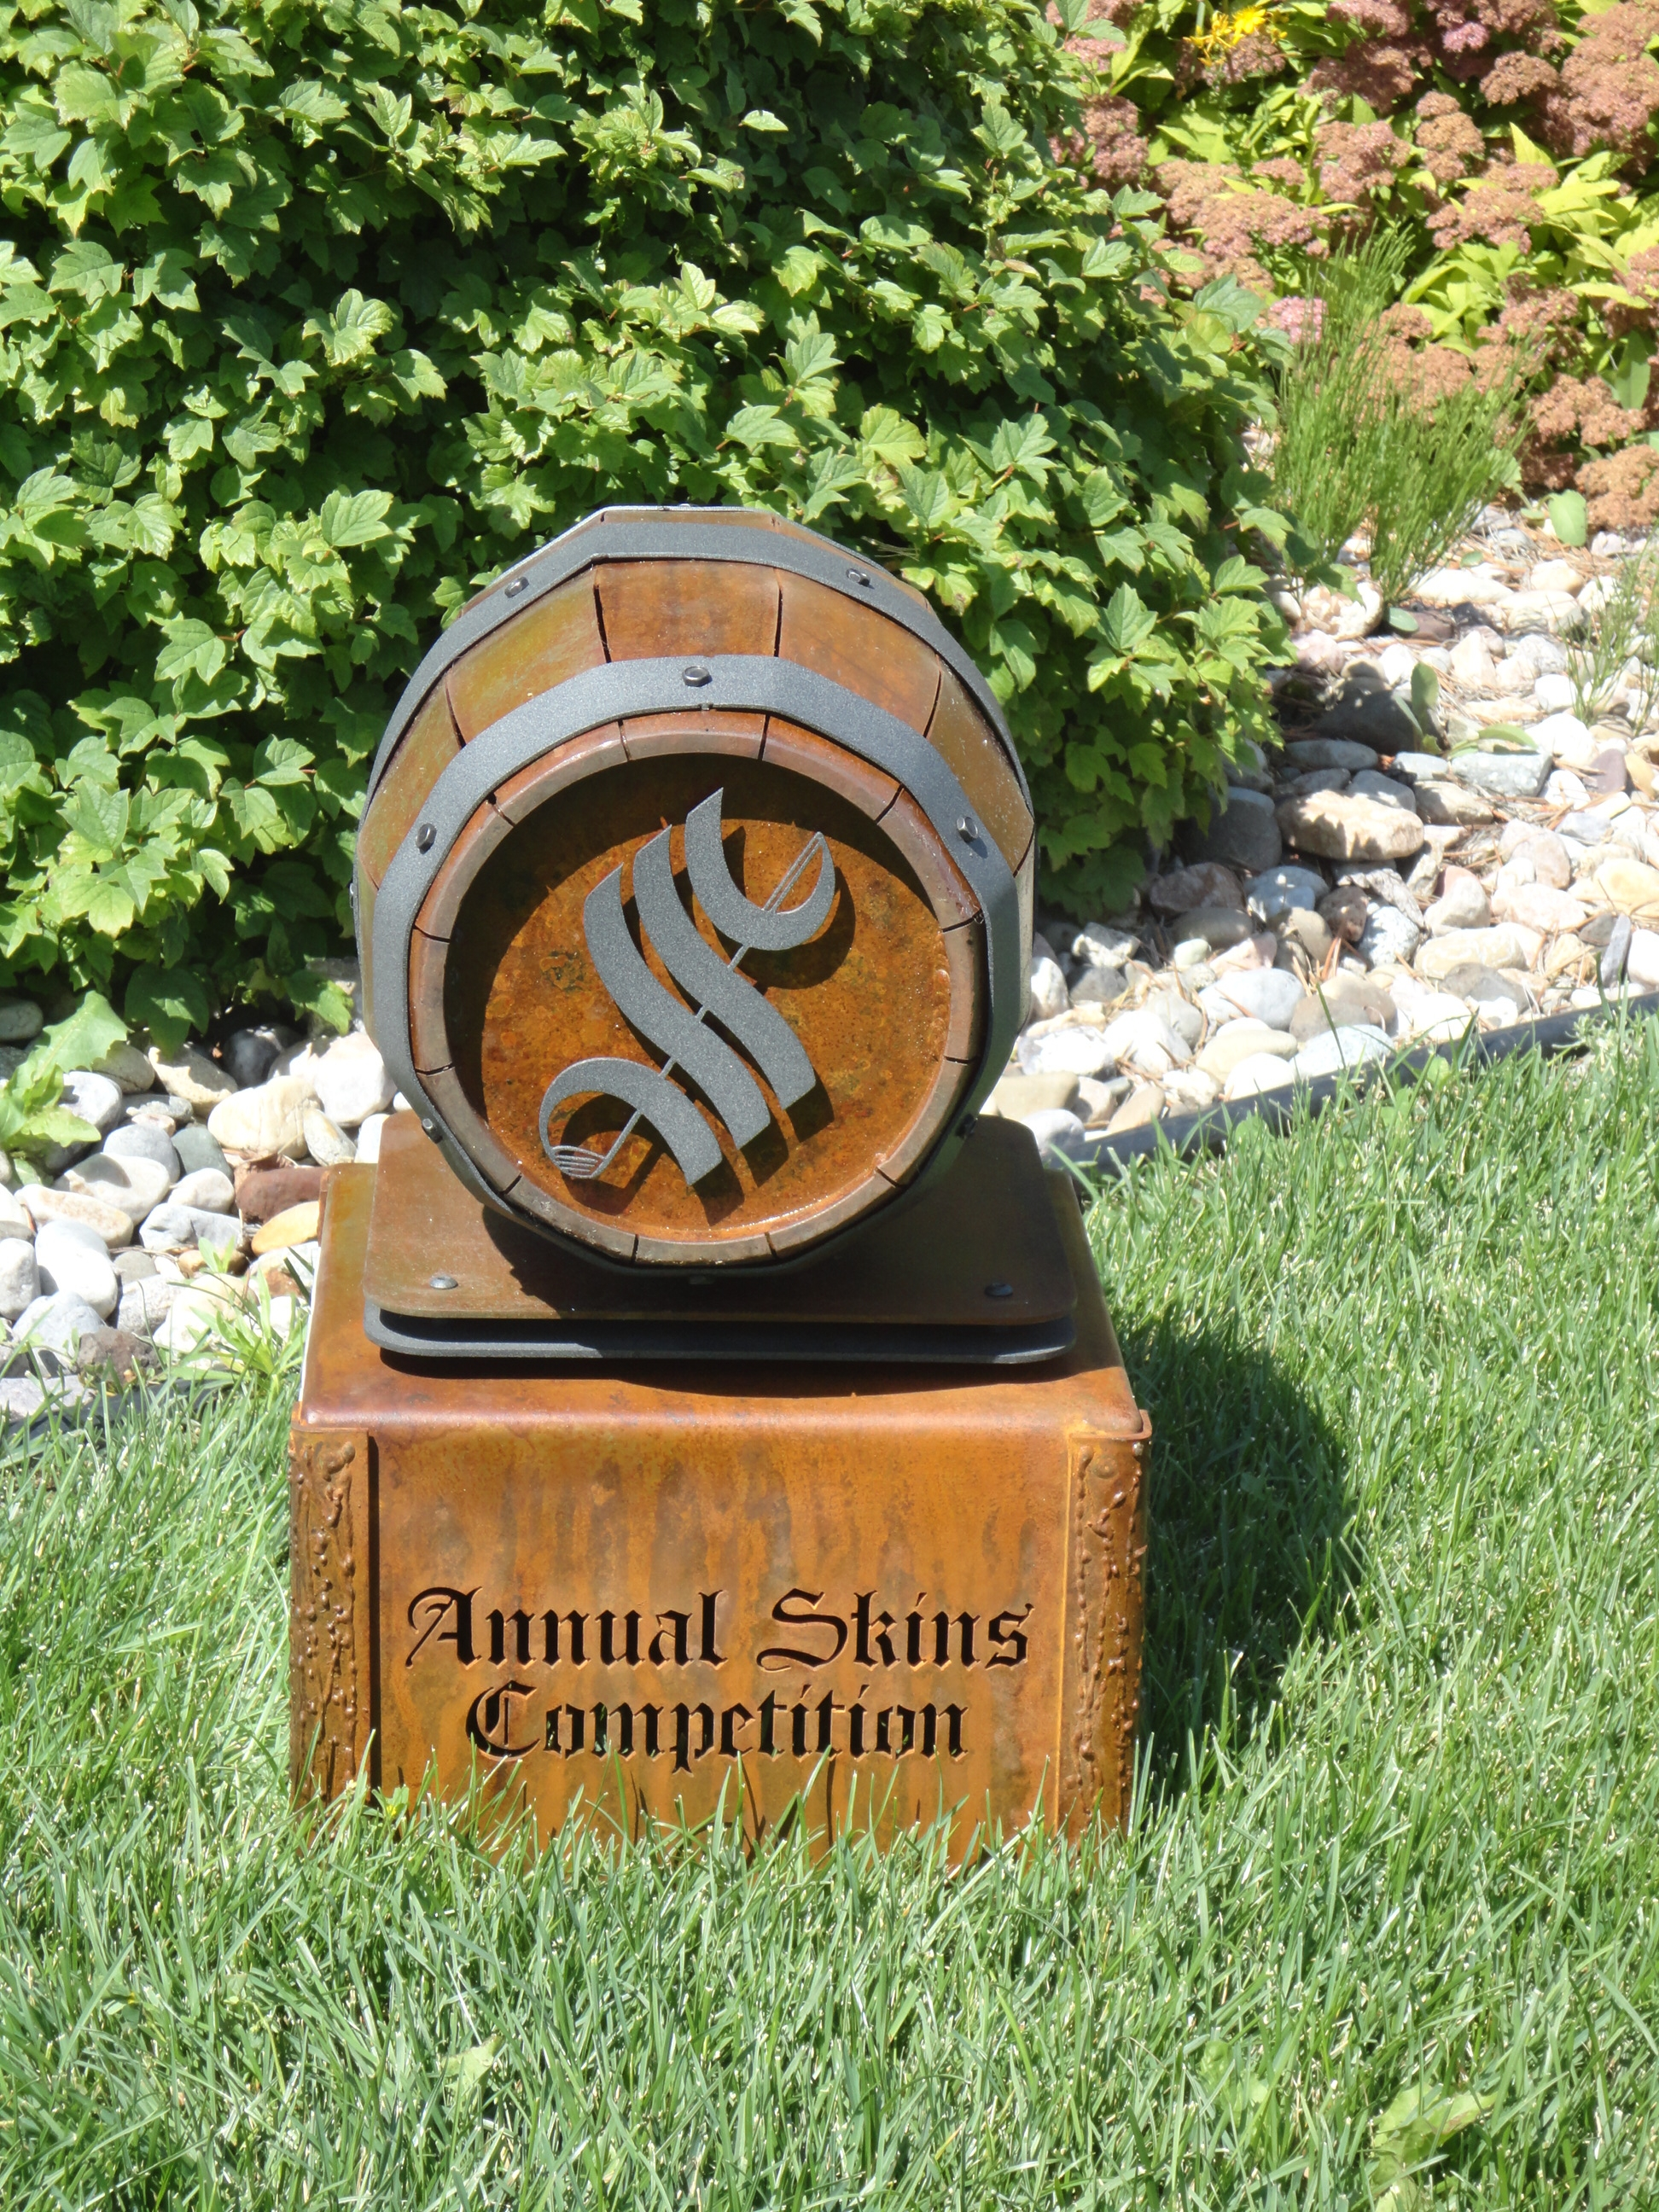 skins-competion-perpetual-trophy